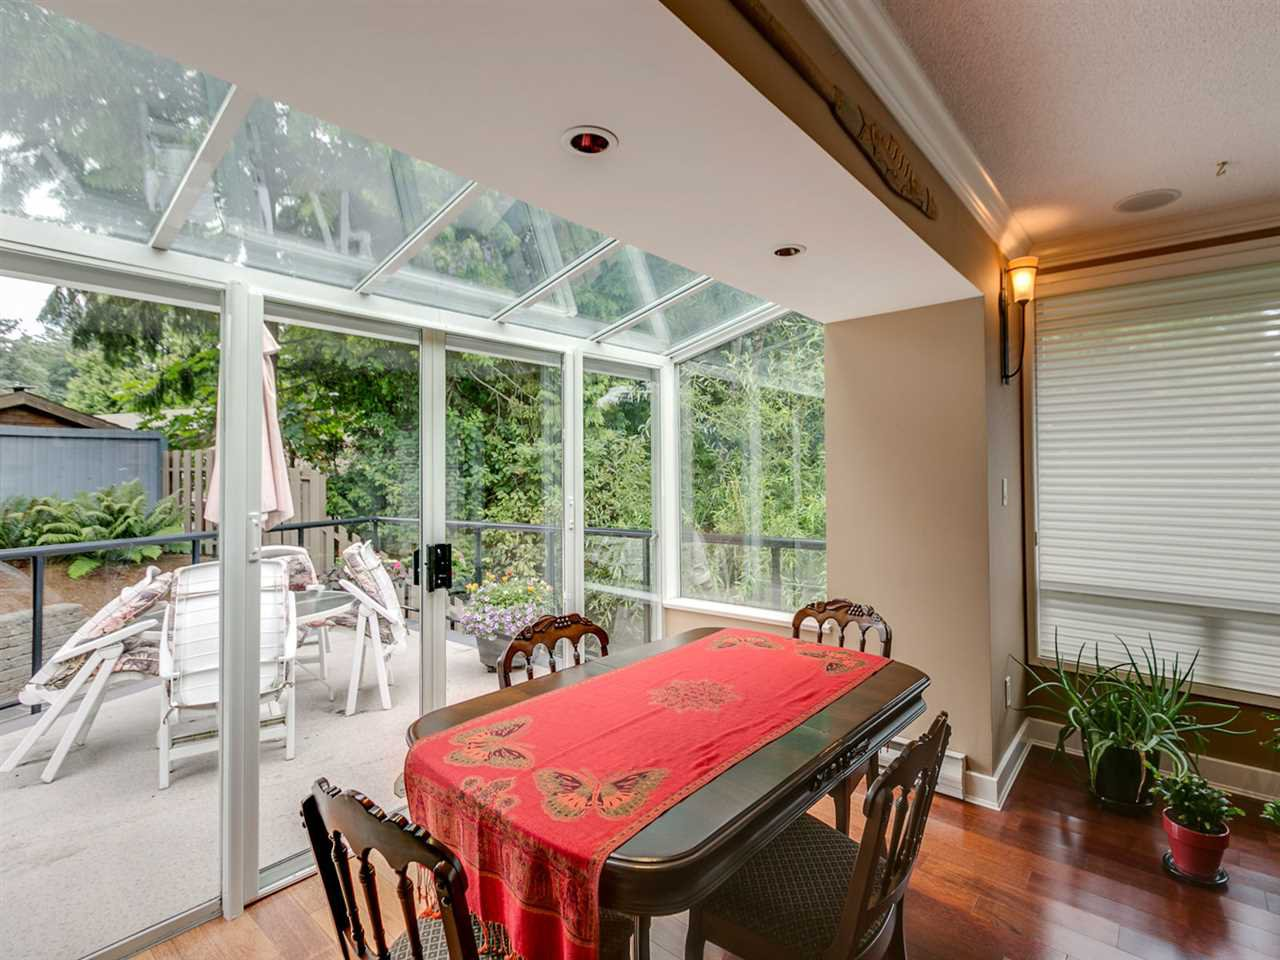 Photo 7: Photos: 1959 ALDERLYNN Drive in North Vancouver: Westlynn House for sale : MLS®# R2094199